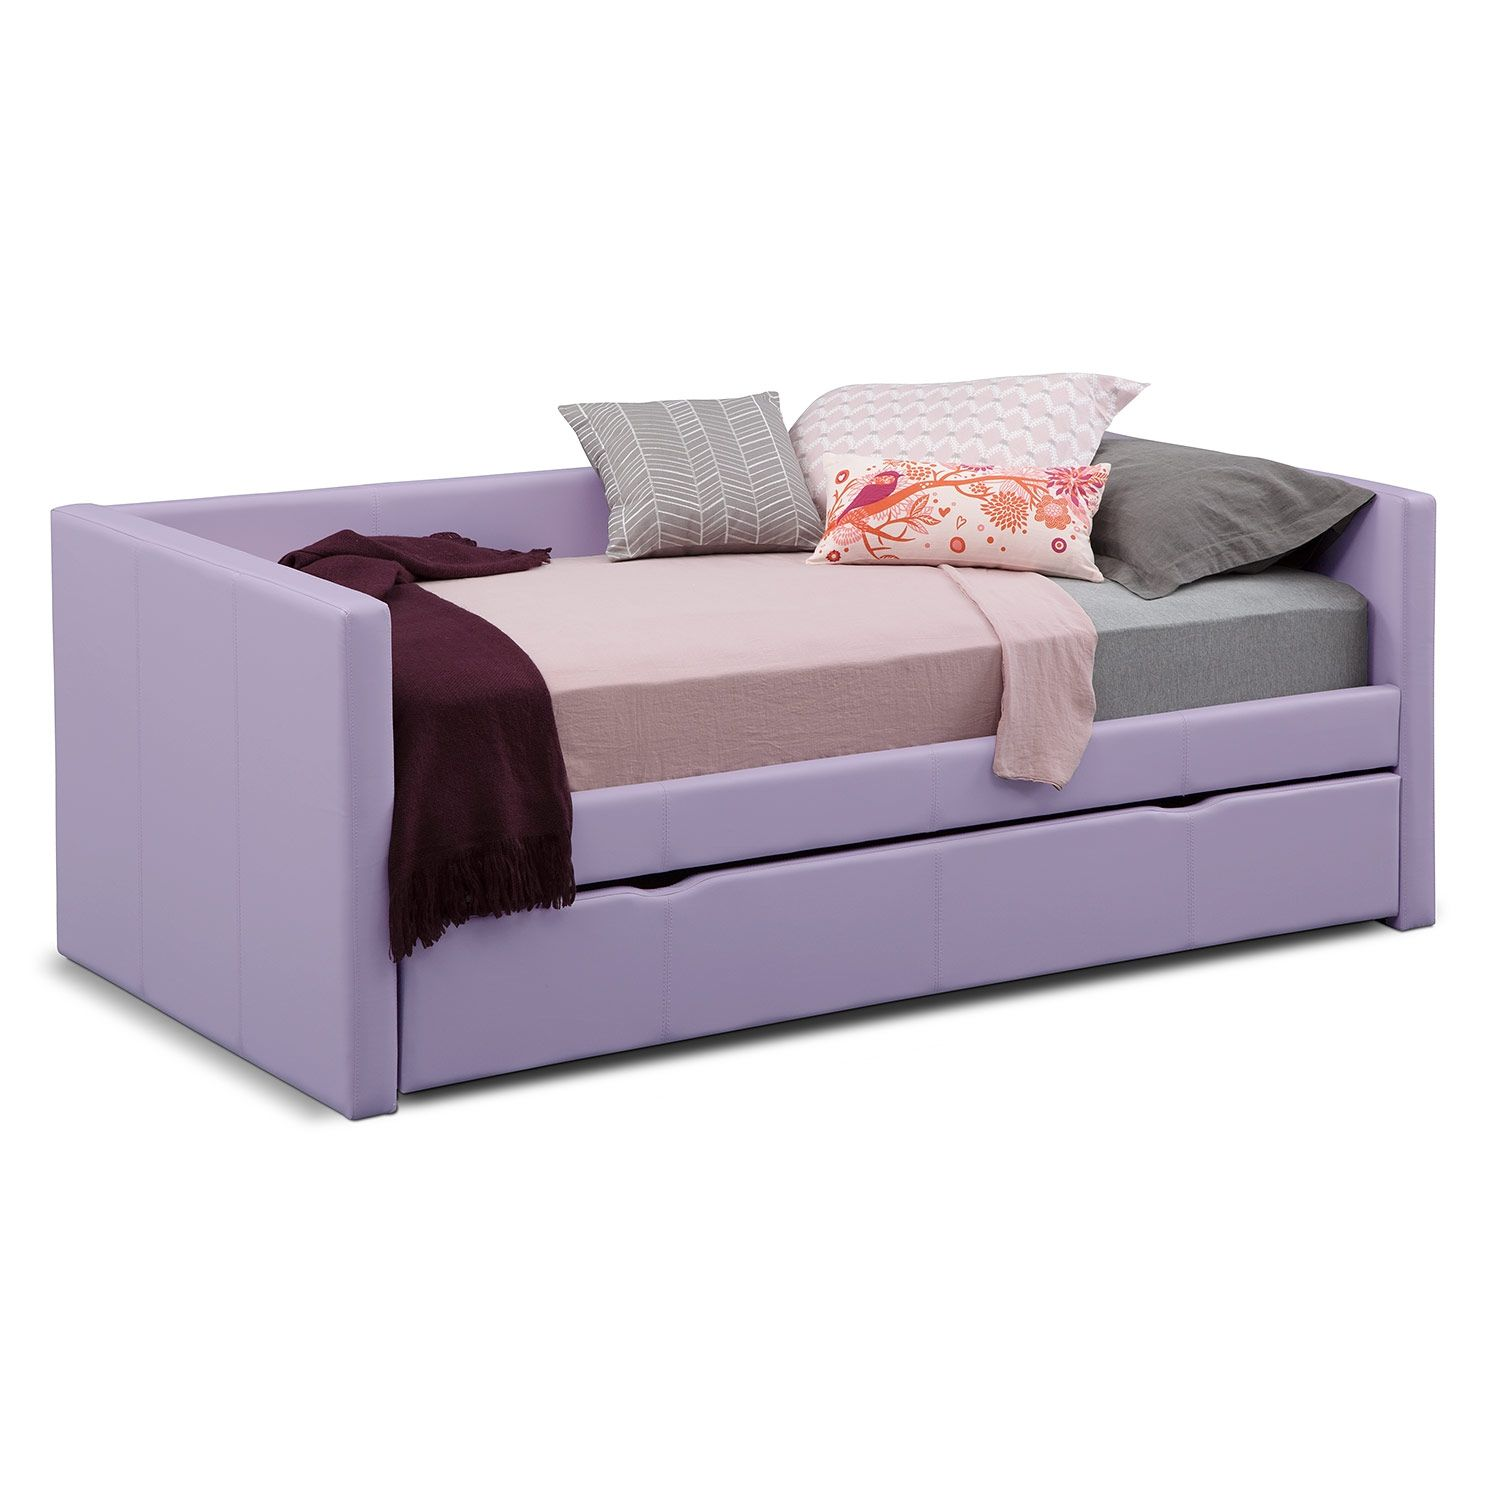 Amazing Purple Daybed With Pop Up Trundle Bed Gorgeous Designs